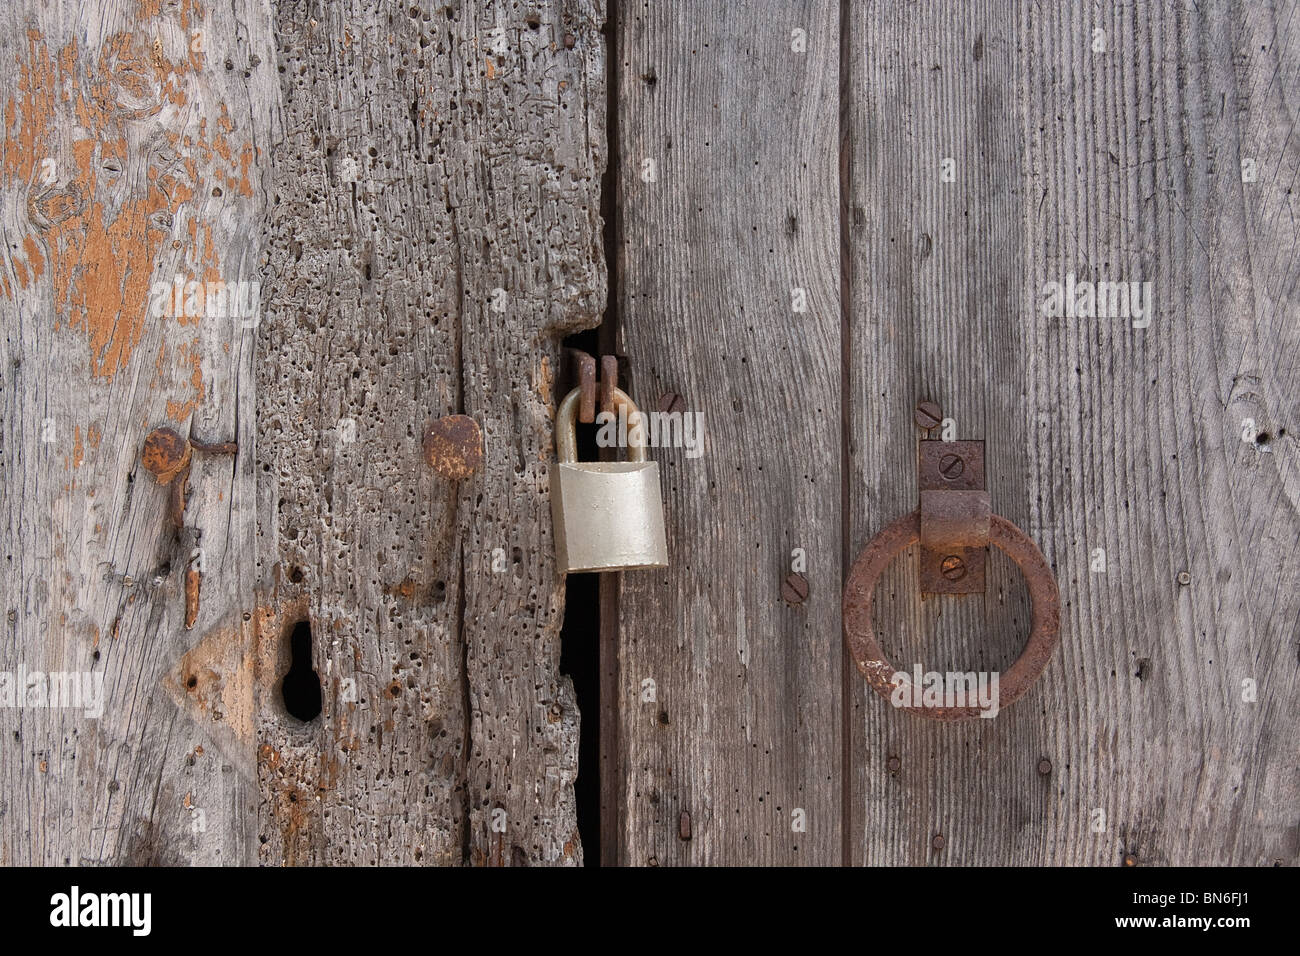 Old wooden planks door locked with rusty nails - Stock Image